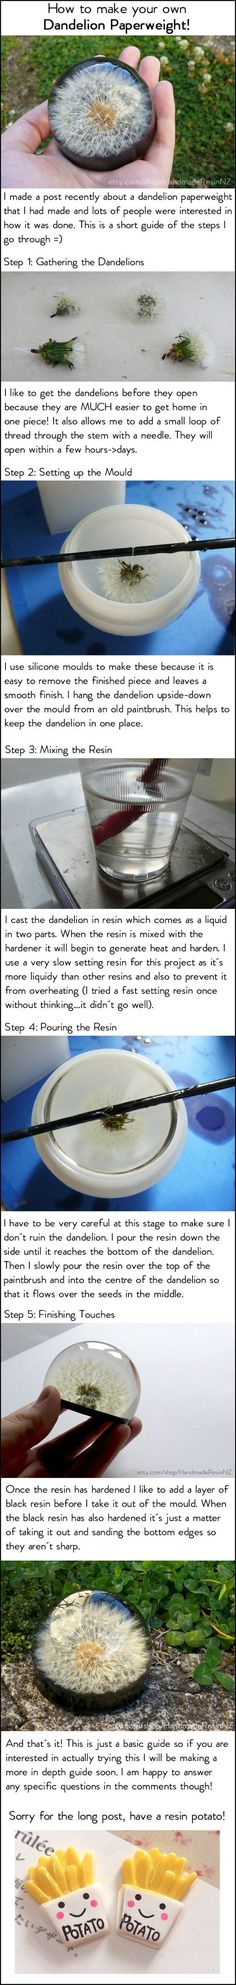 The post Dandelion paperweight tutorial! 2019 appeared first on Jewelry Diy. Cute Crafts, Crafts To Do, Diy Resin Crafts, Dandelion Paperweight, Dandelion Art, Papier Diy, Creation Deco, Ideias Diy, Crafty Craft